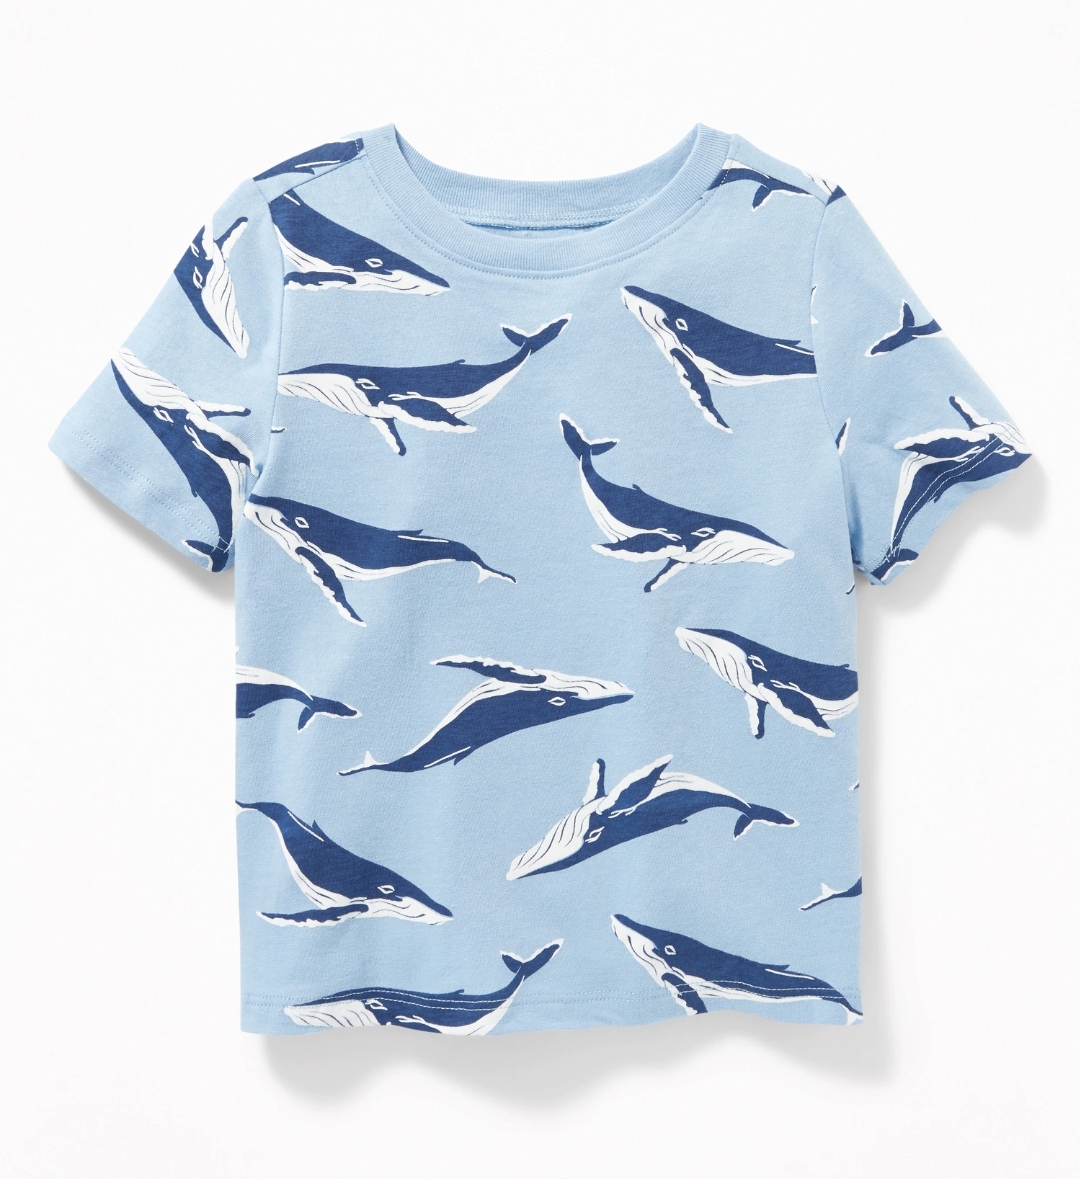 Whale Graphic Tee